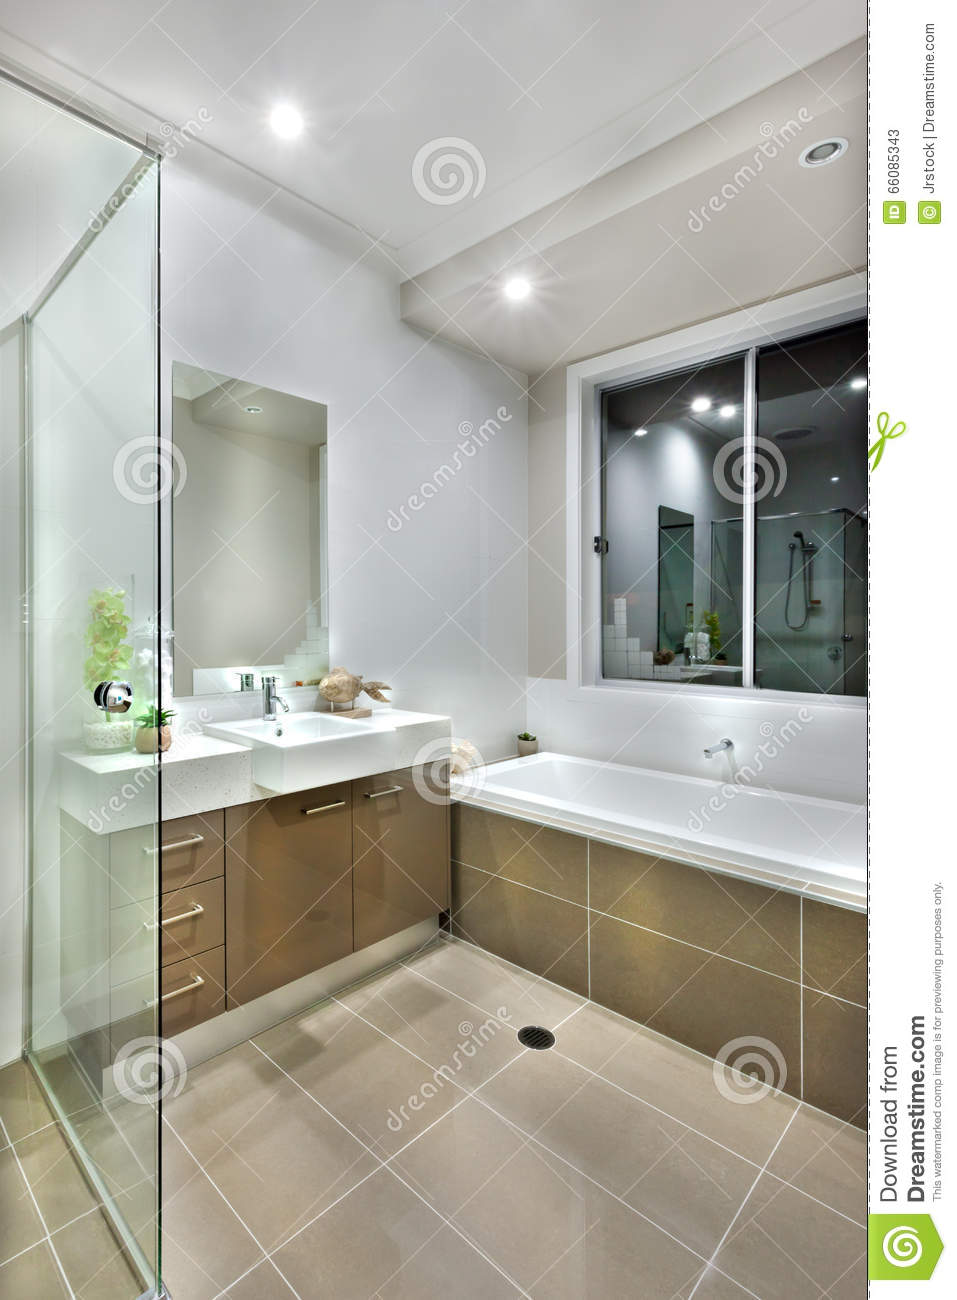 Modern bathroom with dark color floor tiles with lights on editorial modern bathroom with dark color floor tiles with lights on dailygadgetfo Choice Image